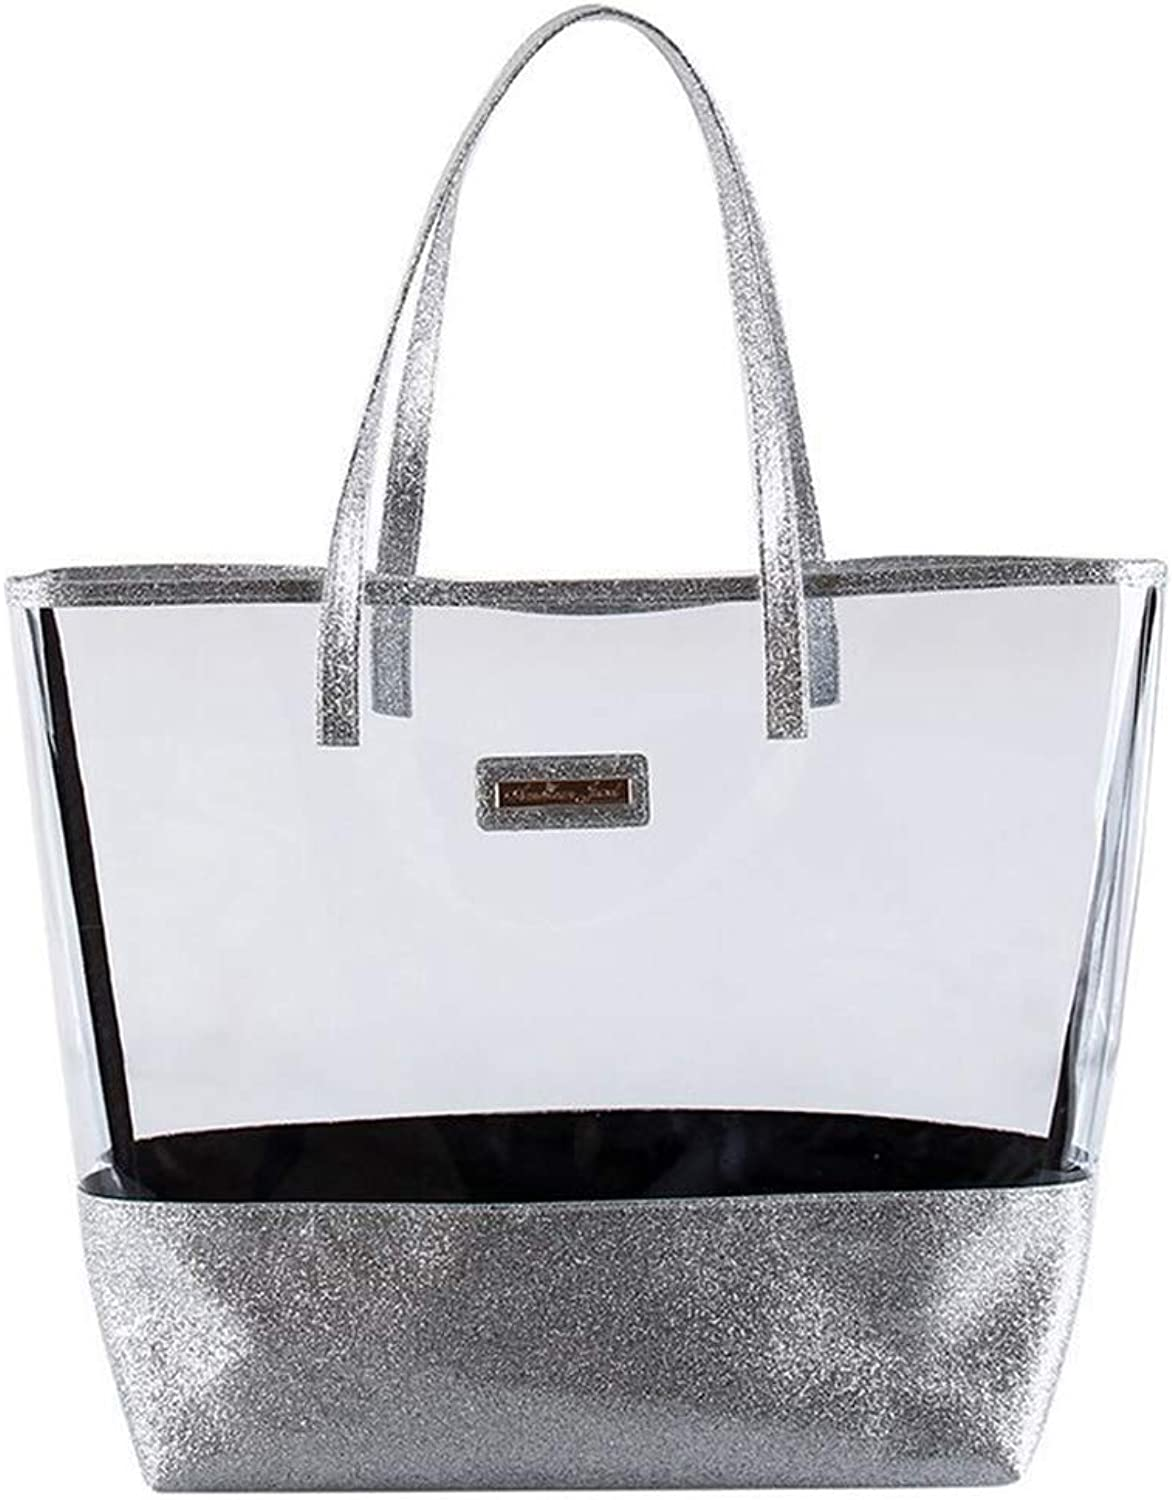 Glitter Tote Beach Bag Purse  Clear Vinyl Shoulder Bag with Glitter Accents  Silver  Girls & Teen Accessories  DressUp